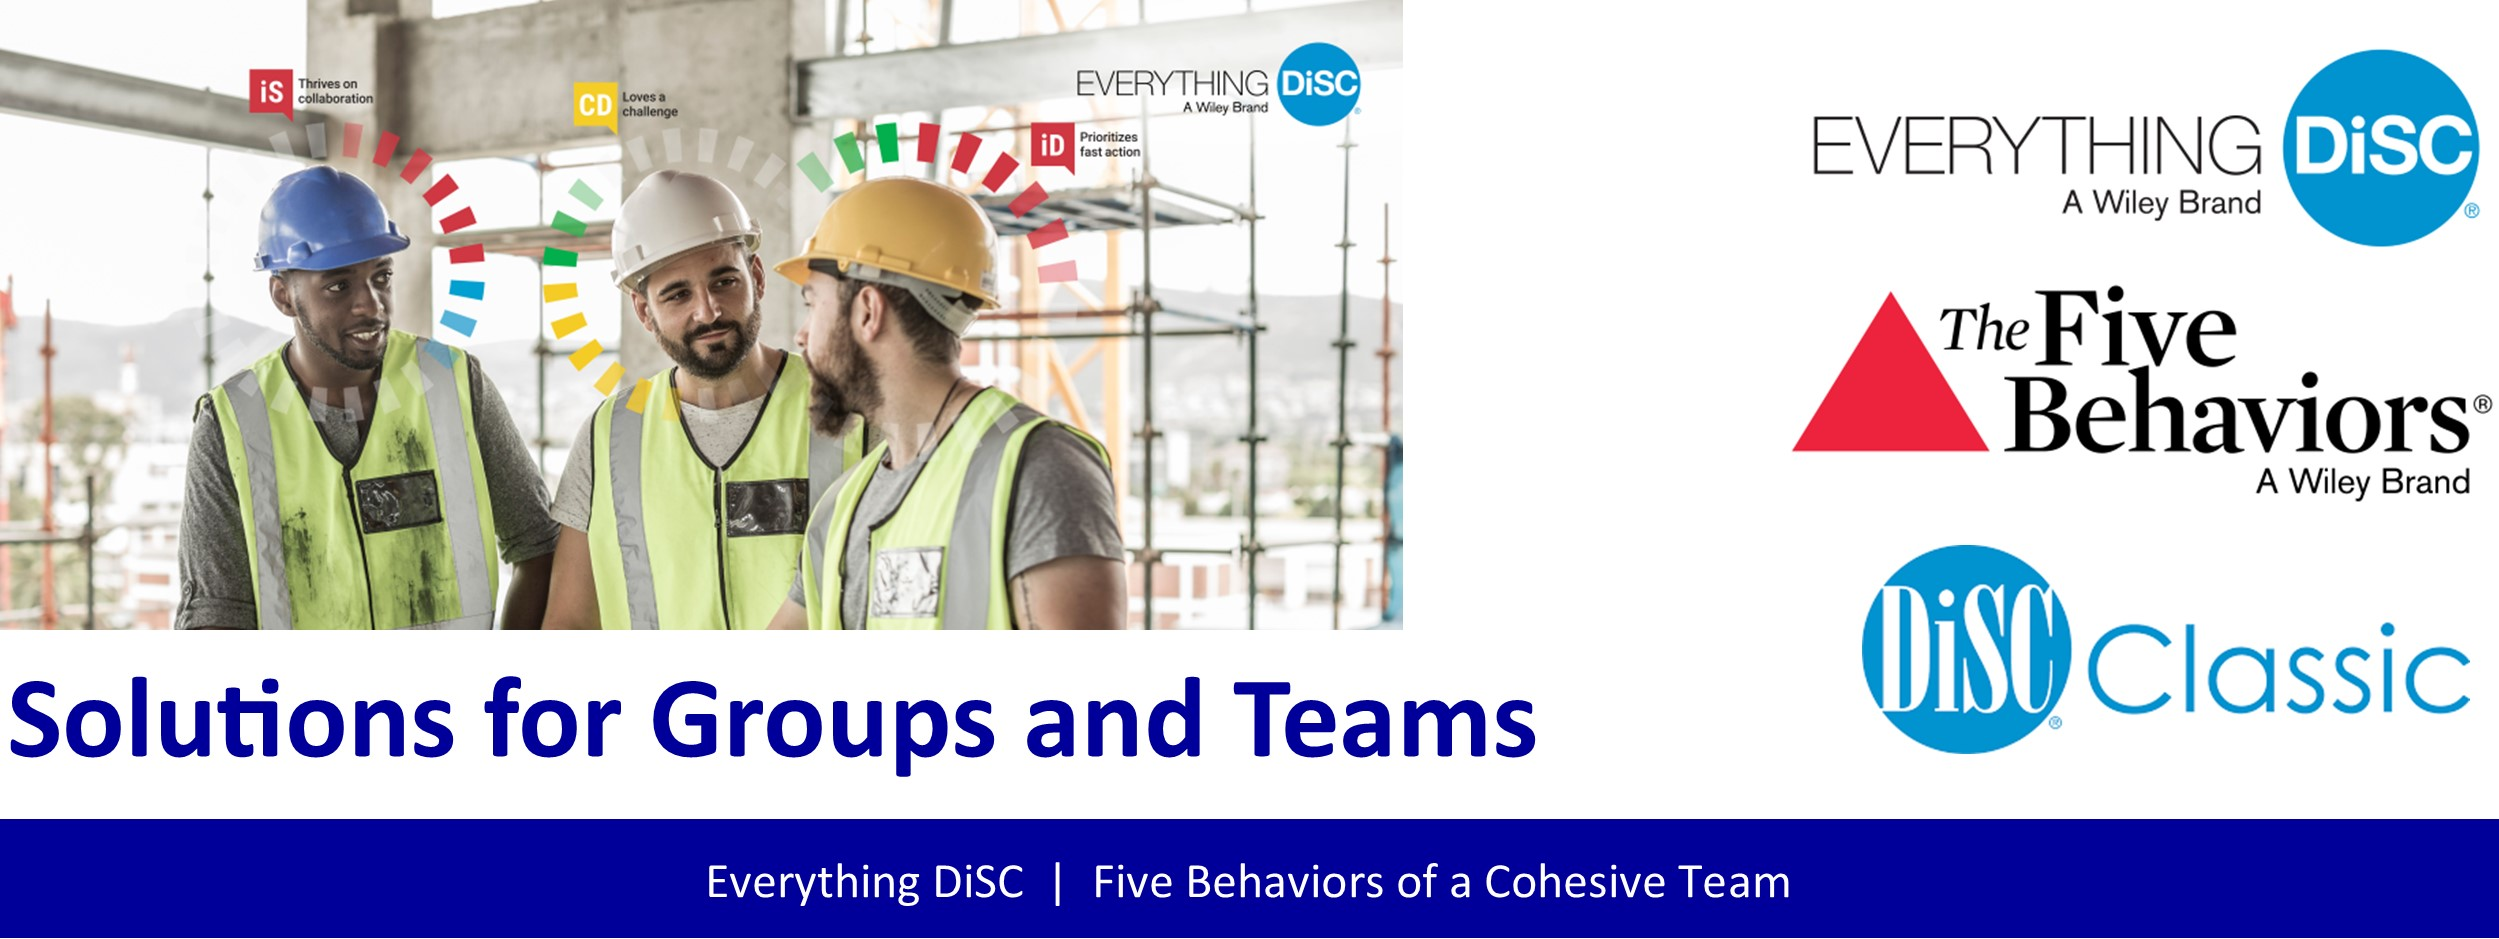 Everything DiSC Solutions for Teams and Groups